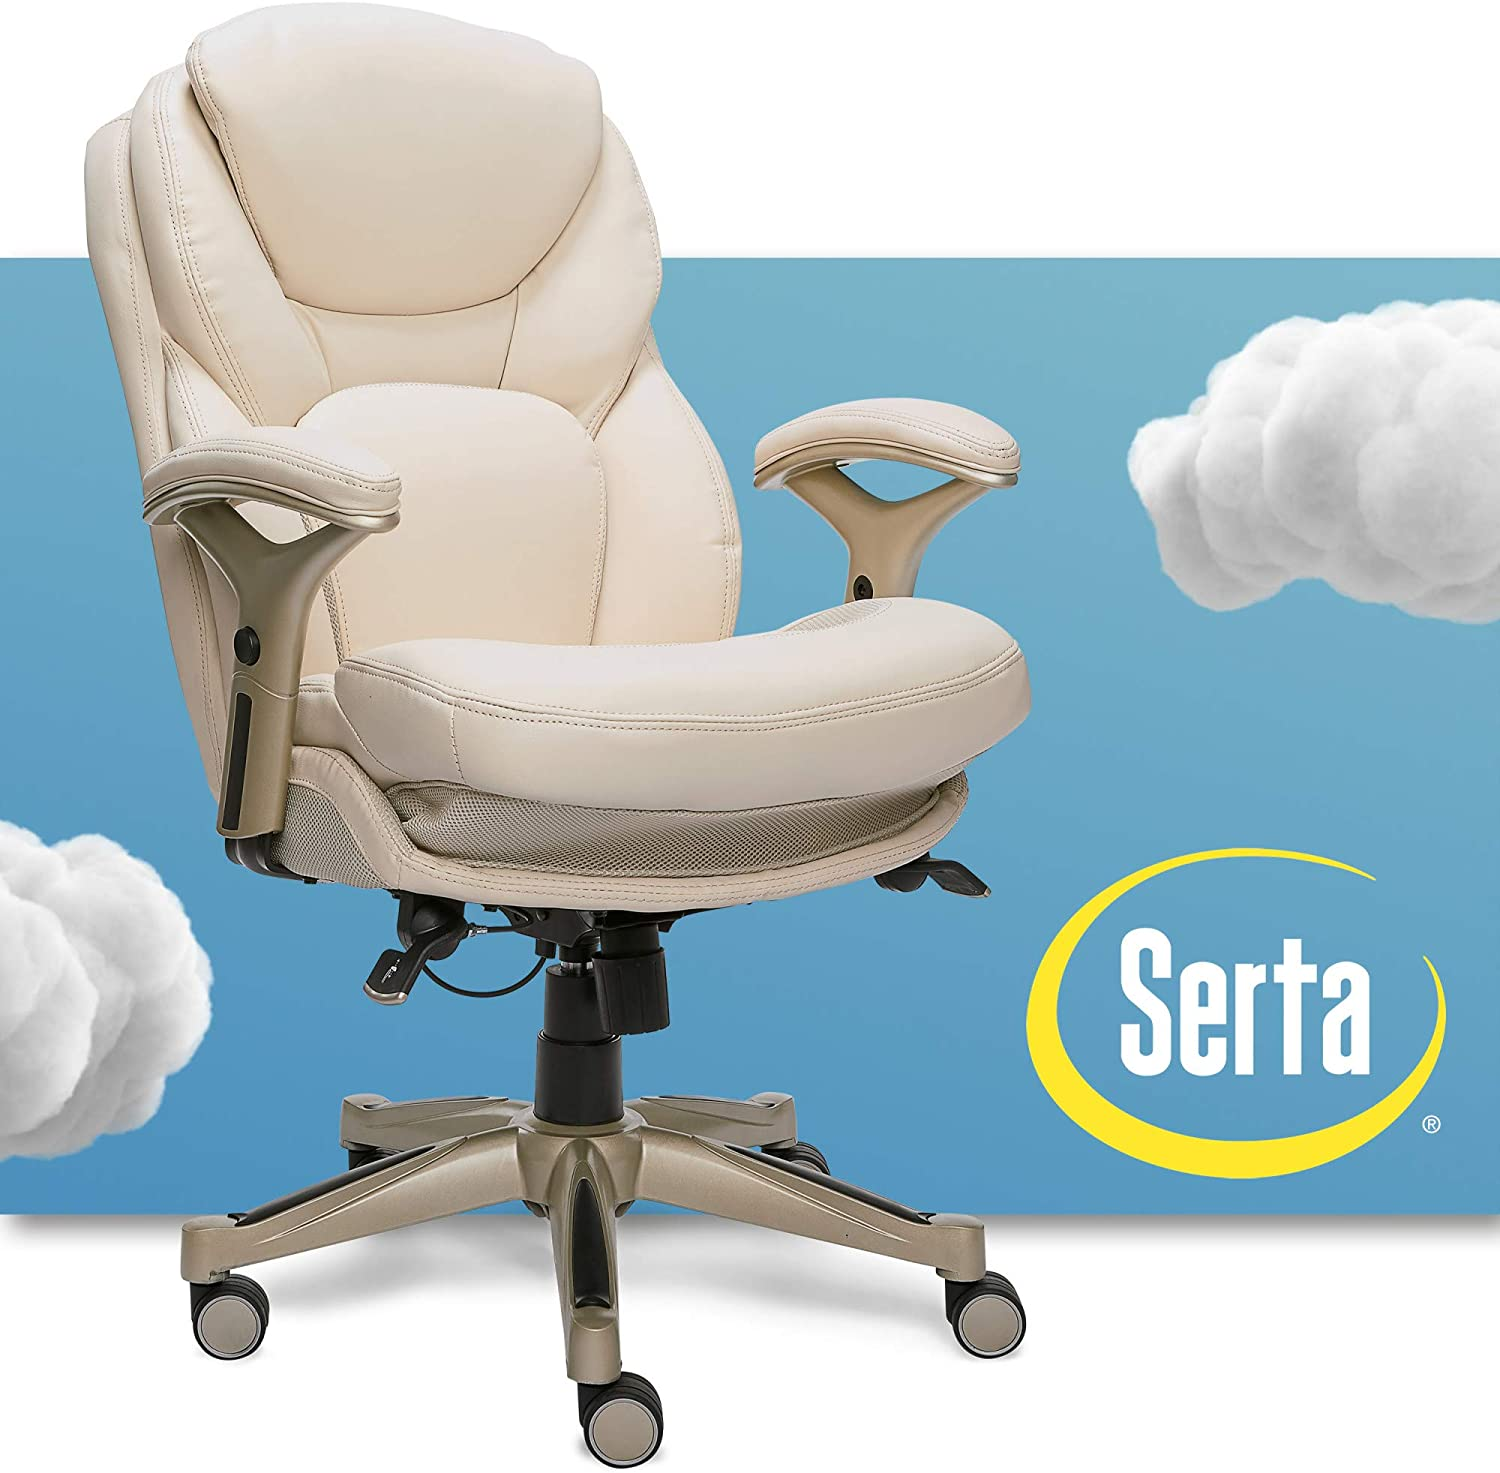 Serta Ergonomic Executive Office Chair Motion Technology Adjustable Mid  Back Design with Lumbar Support, Ivory Bonded Leather